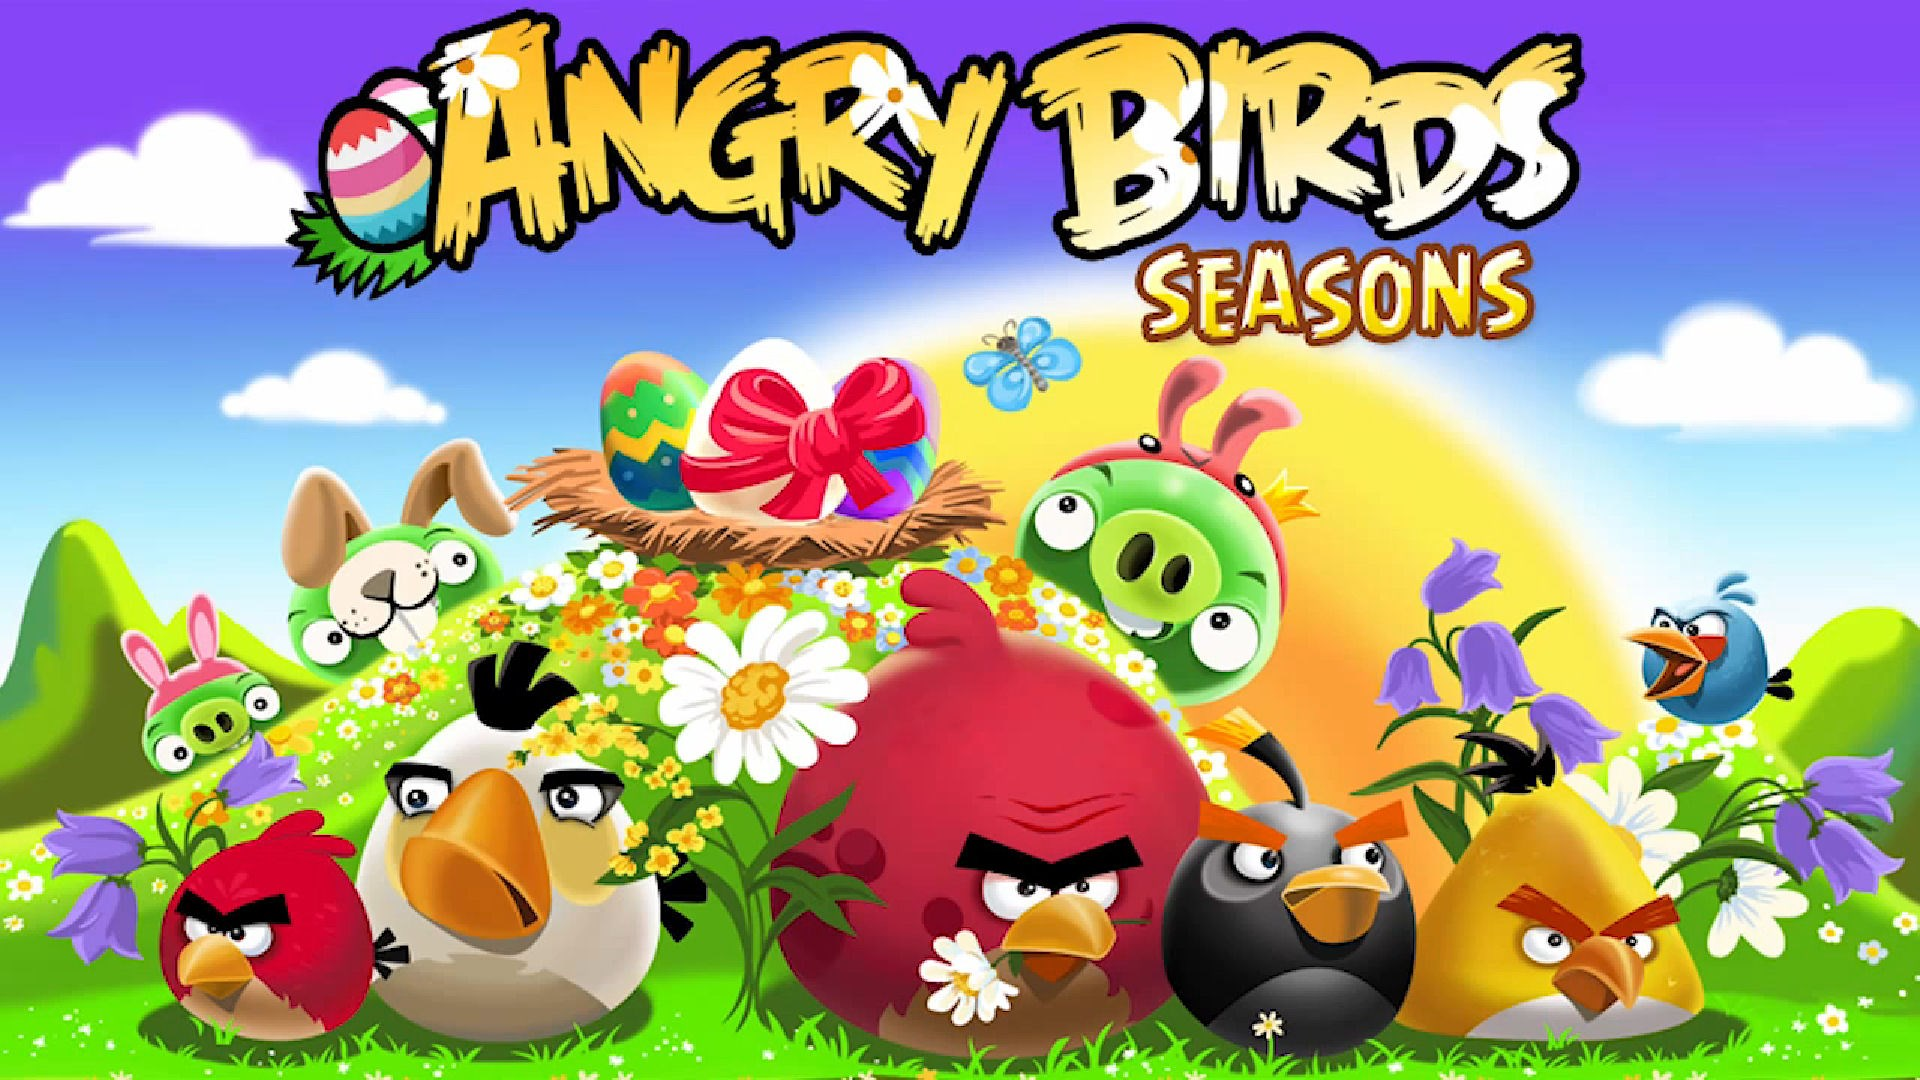 1920x1080-free-computer-for-angry-birds-seasons-wallpaper-wpc580678